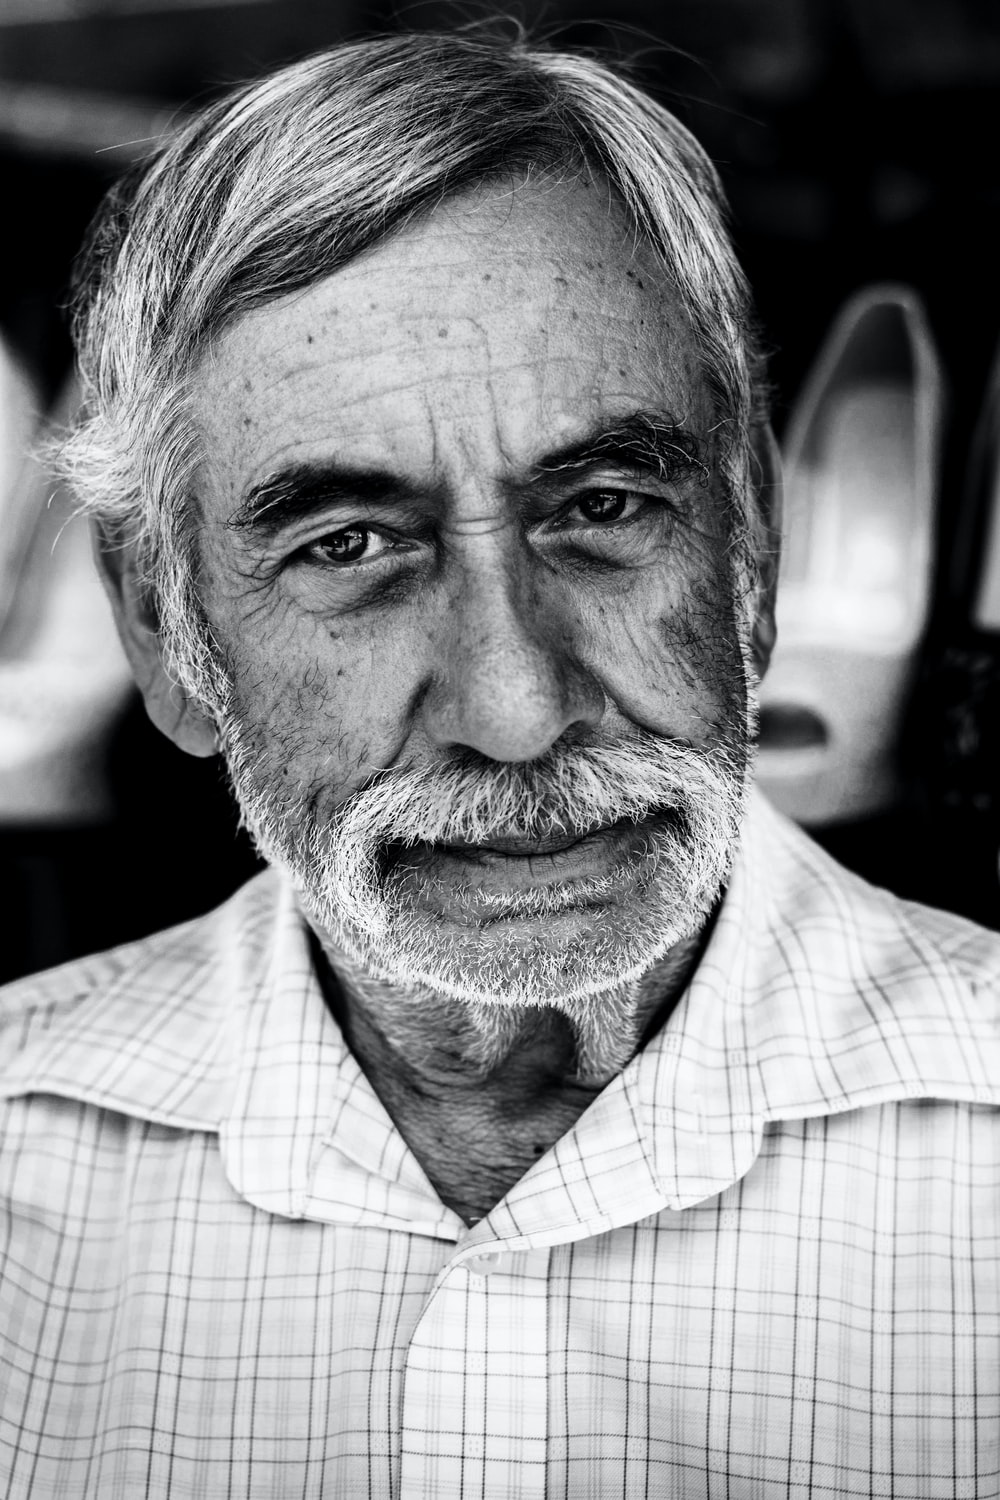 grayscale photography of portrait man